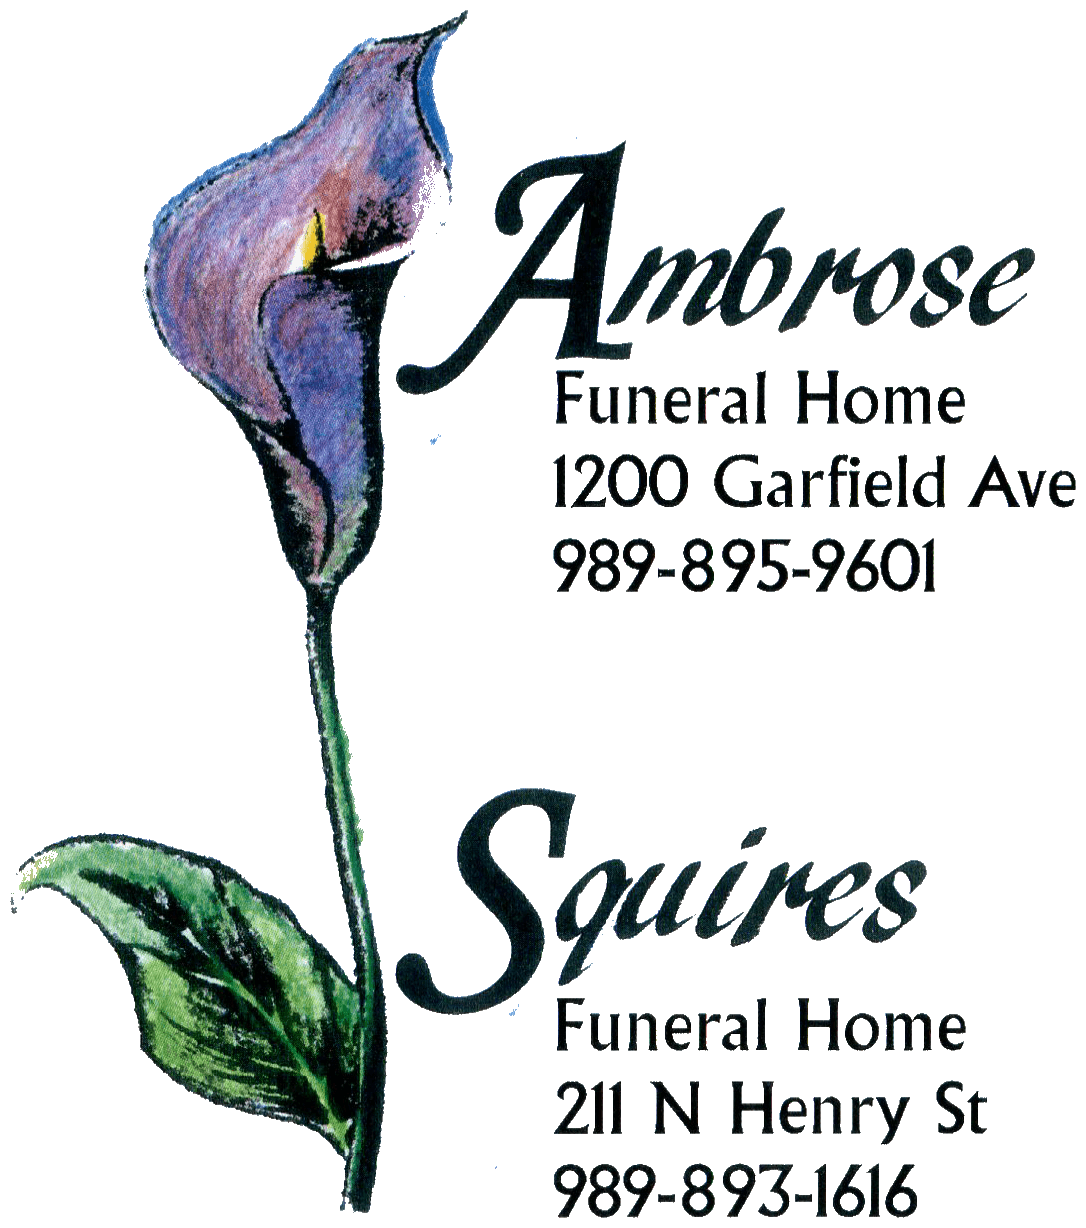 Send flowers ambrose and squires funeral homes bay city mi push button for menu push button for menu home izmirmasajfo